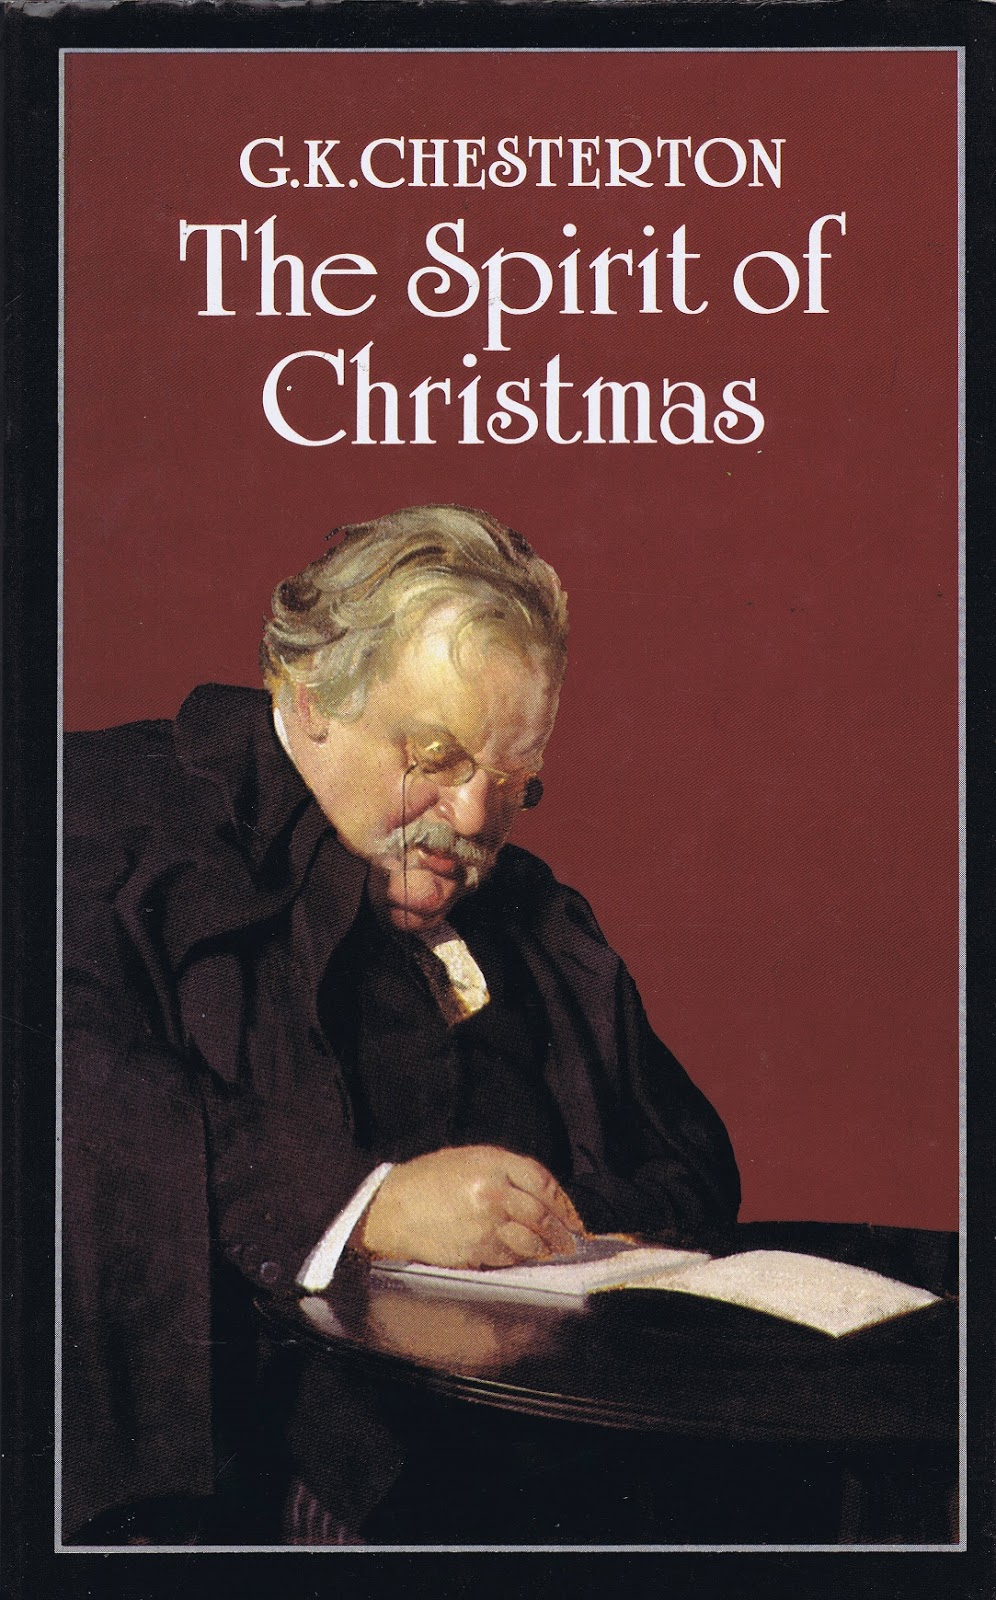 spirit of christmas essays The spirit of christmas is in its beautiful traditions and thoughtful customs celebrate the joys and wonders of christmas with your friends, family, acquaintances and loved ones and create a beautiful christmas spirit within yourselves.